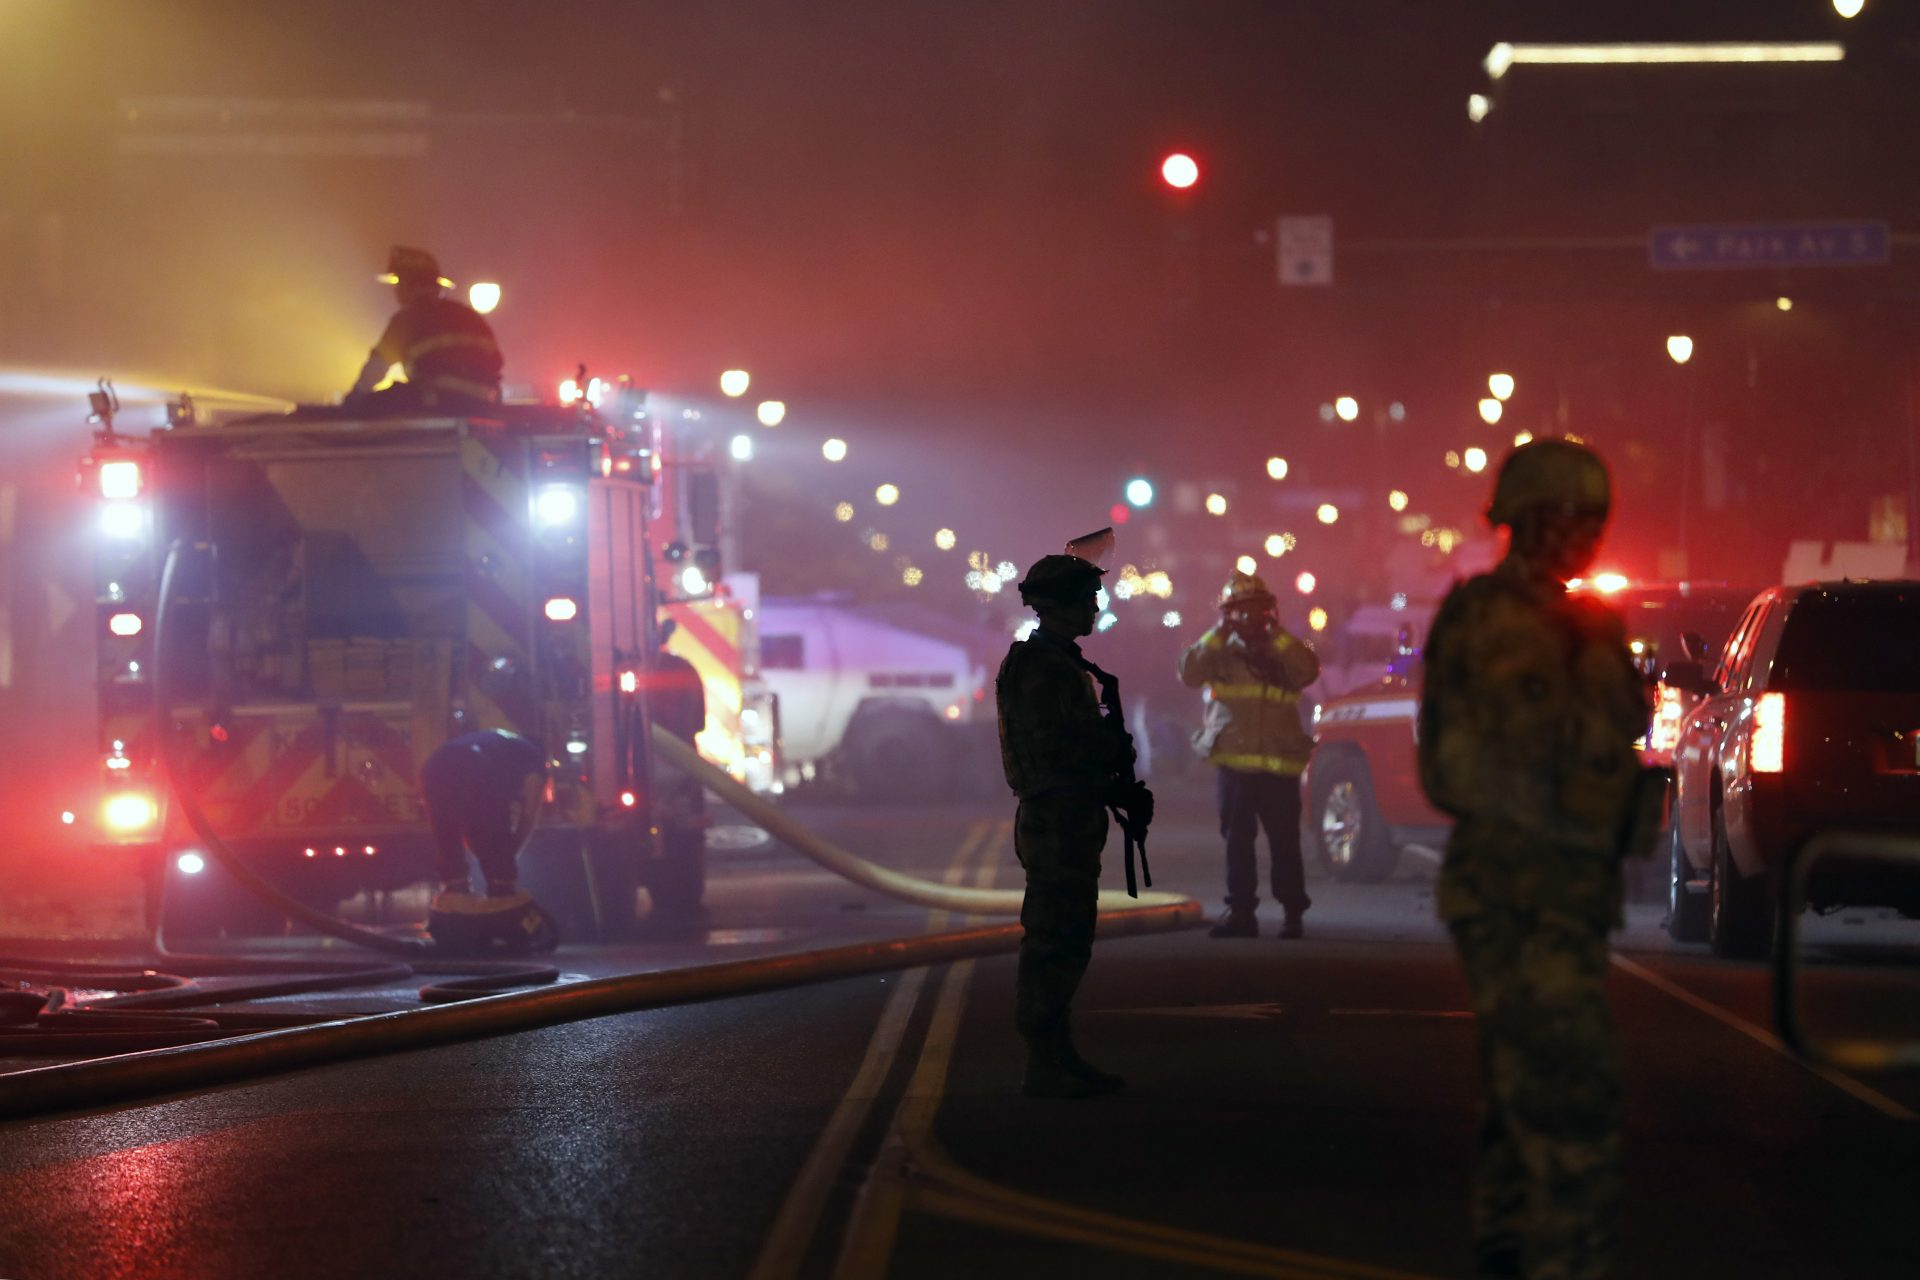 The National Guard standby as firefighters extinguish a blaze at a gas station Friday, May 29, 2020, in Minneapolis. Protests continued following the death of George Floyd, who died after being restrained by Minneapolis police officers on Memorial Day.